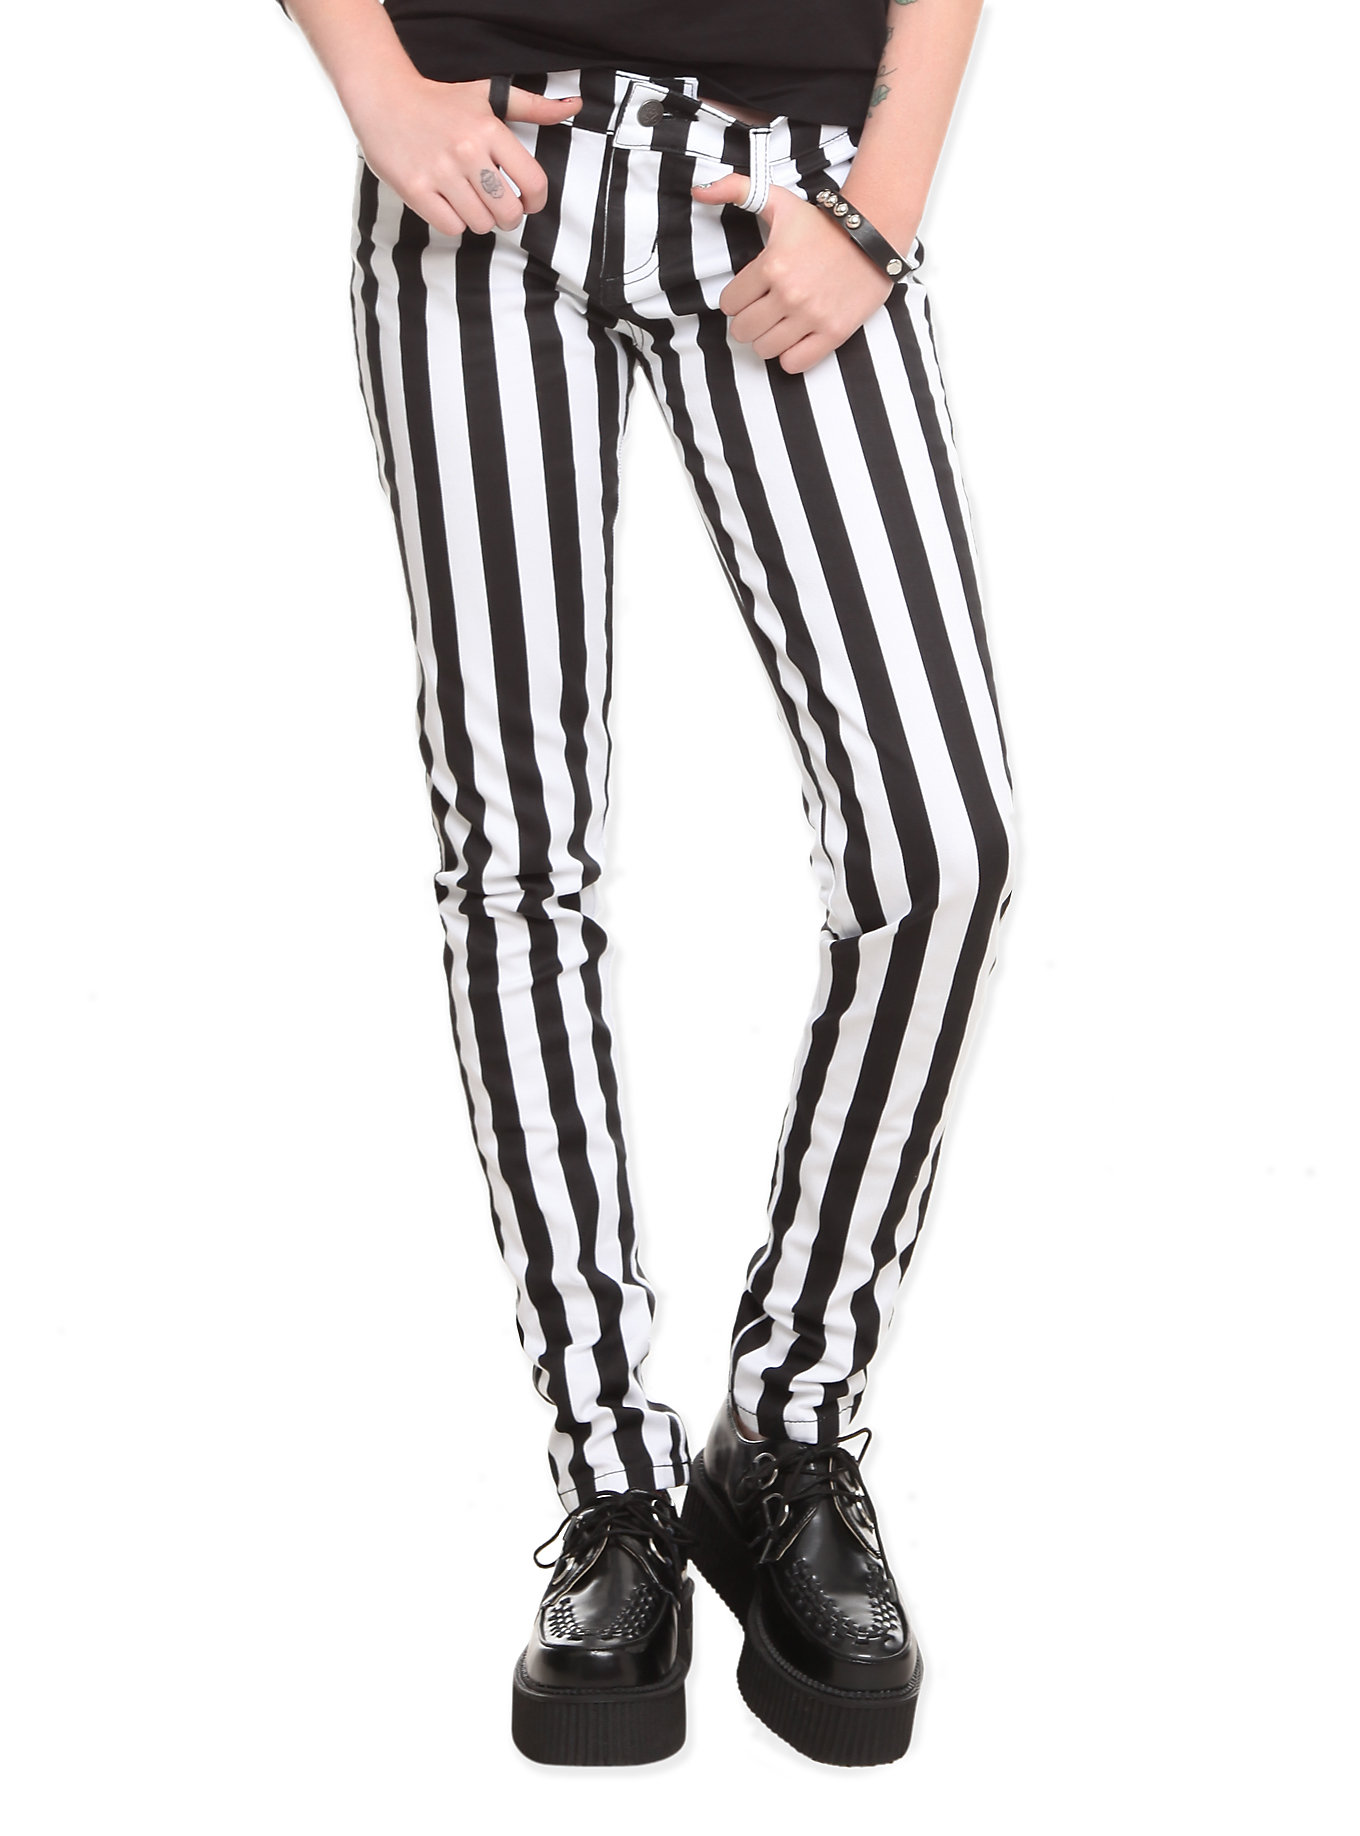 Black and white skinny fit pants,   $31.60 at  Hot Topic